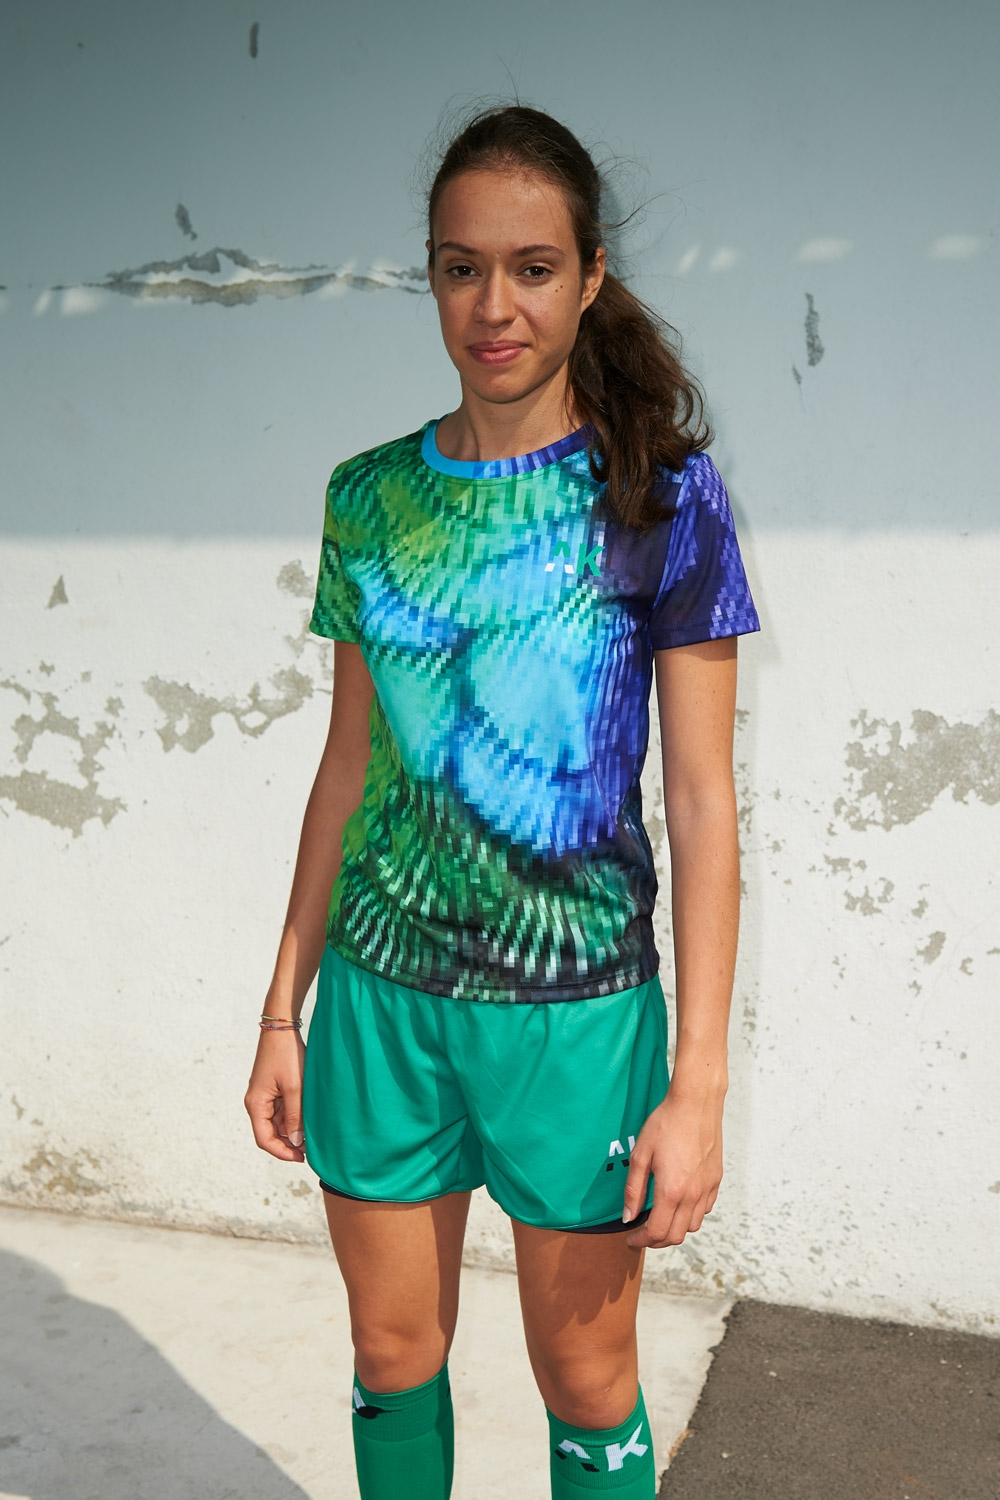 Suzanne Jersey - Pixel Plumage Blue & Green - Women's football - Front view